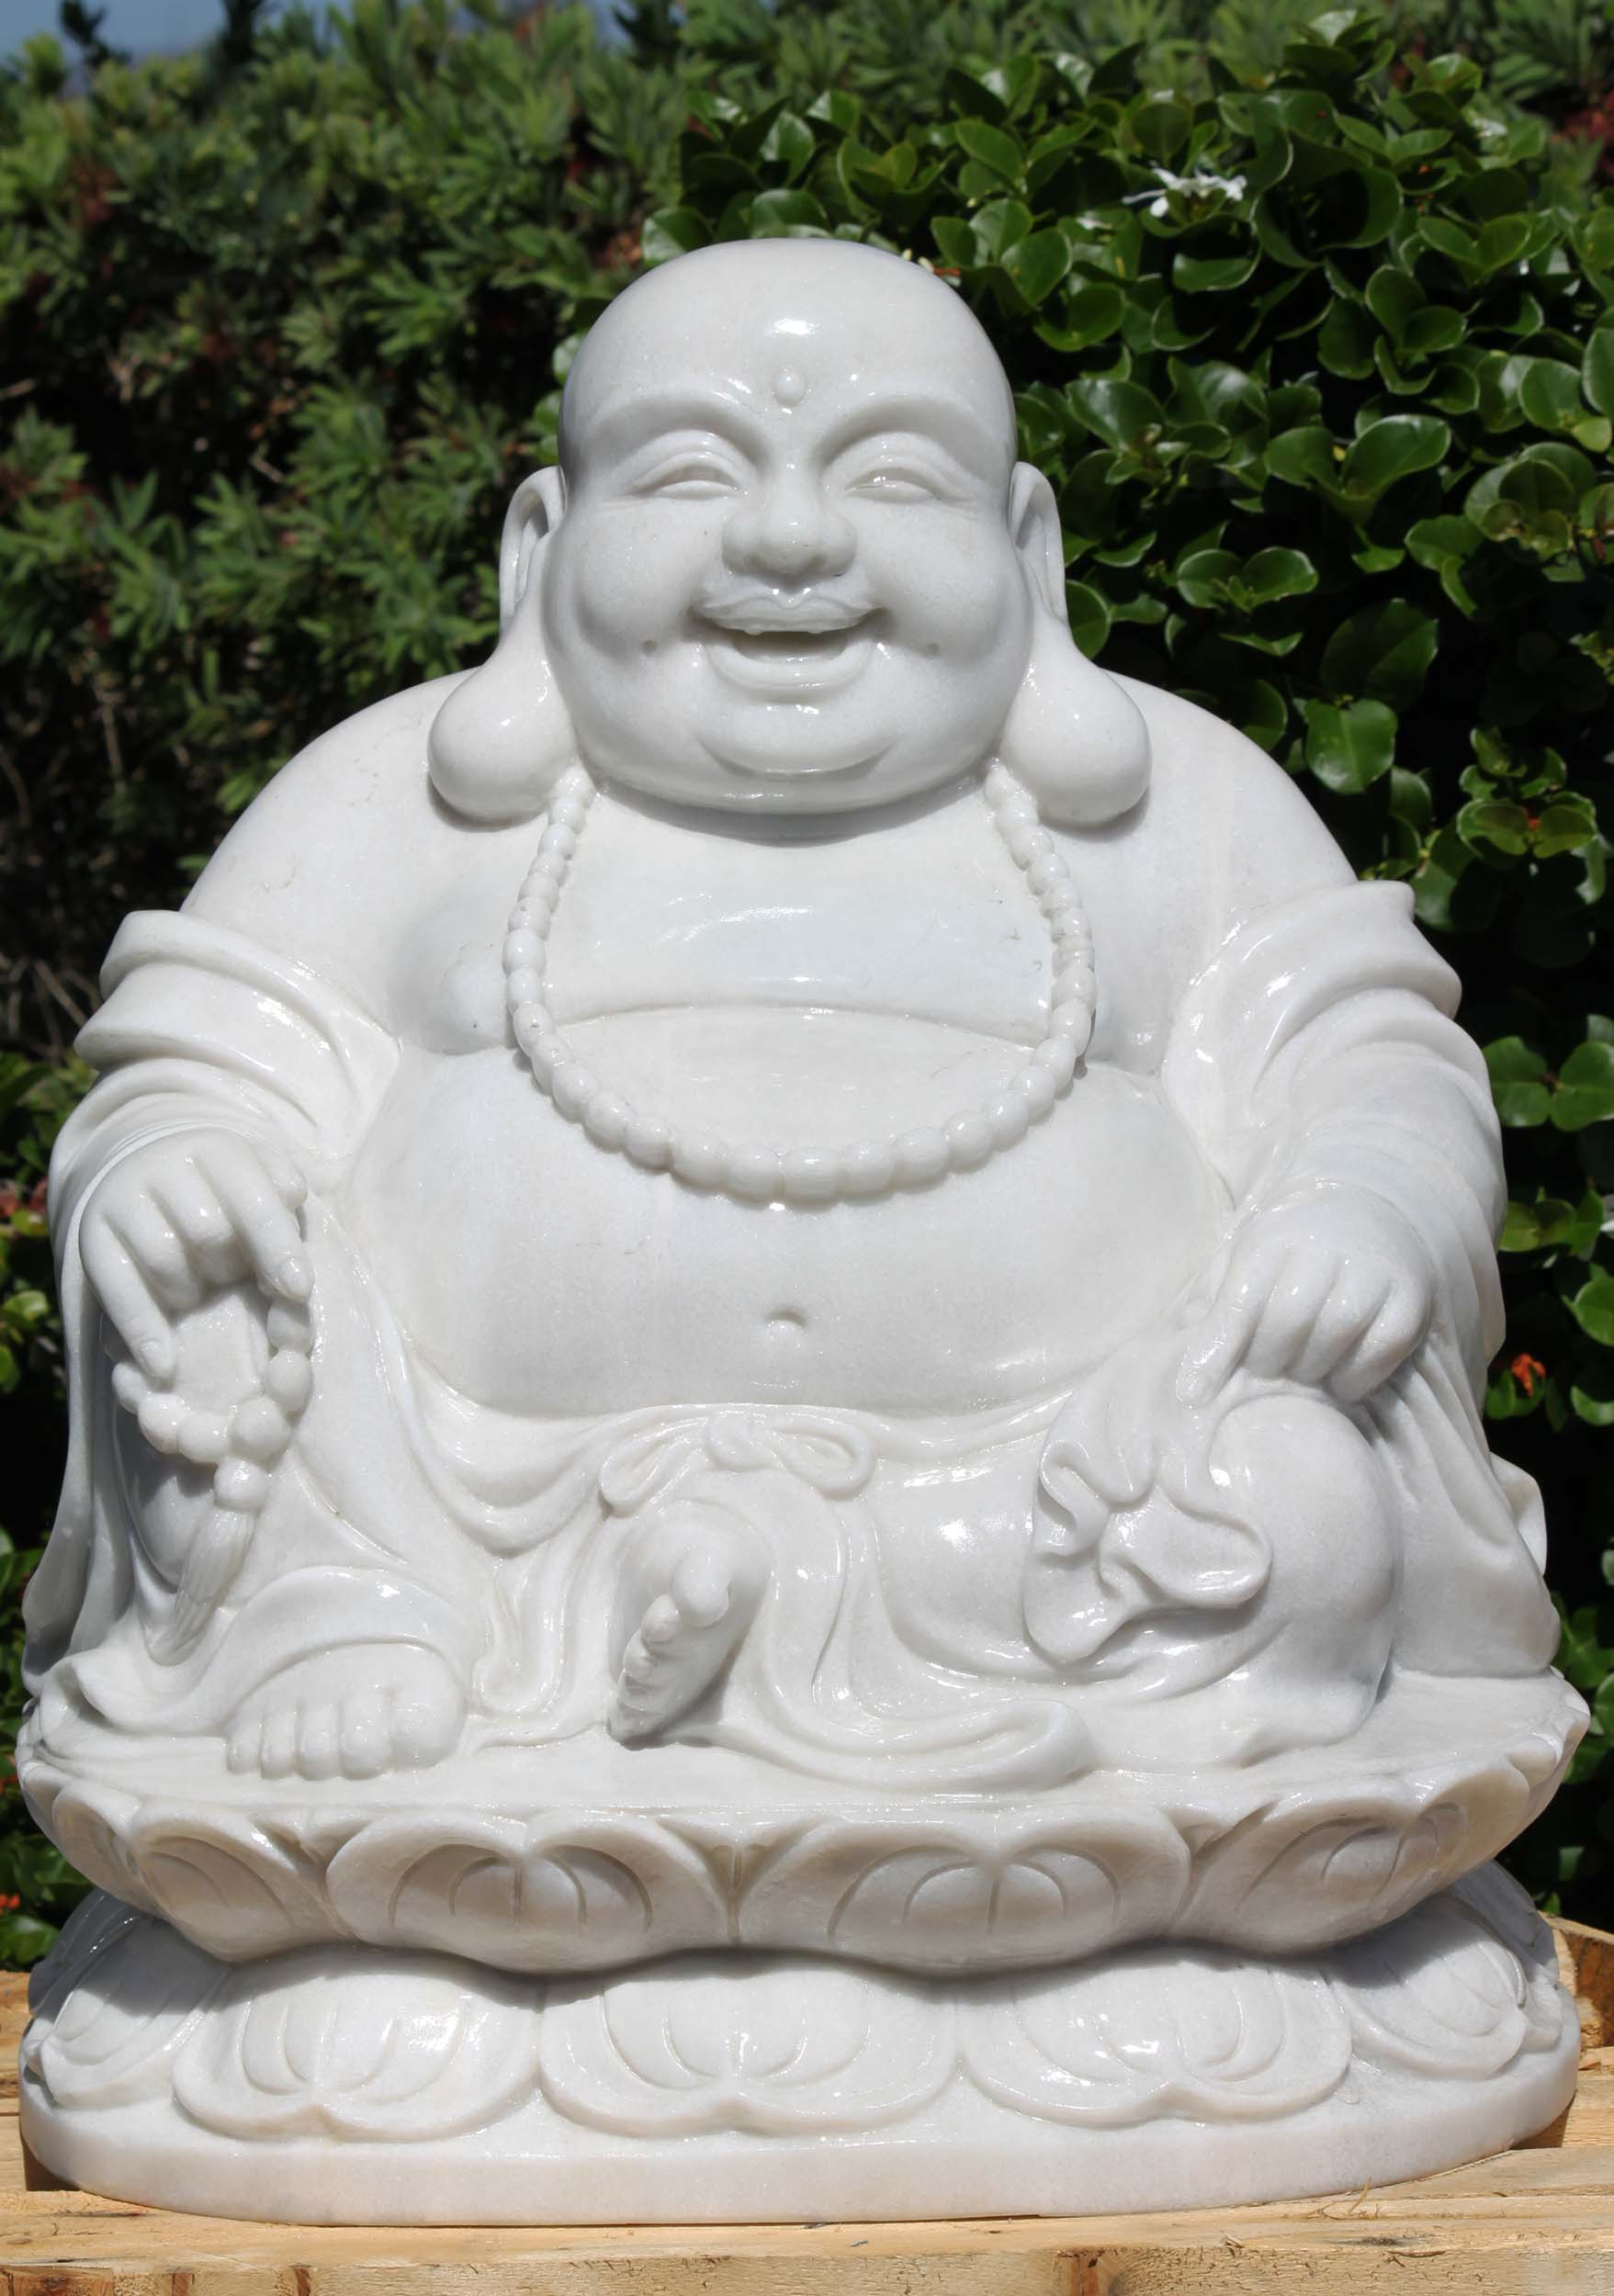 1-White-Marble-Fat-And-Happy-Buddha-Statue_2.jpg